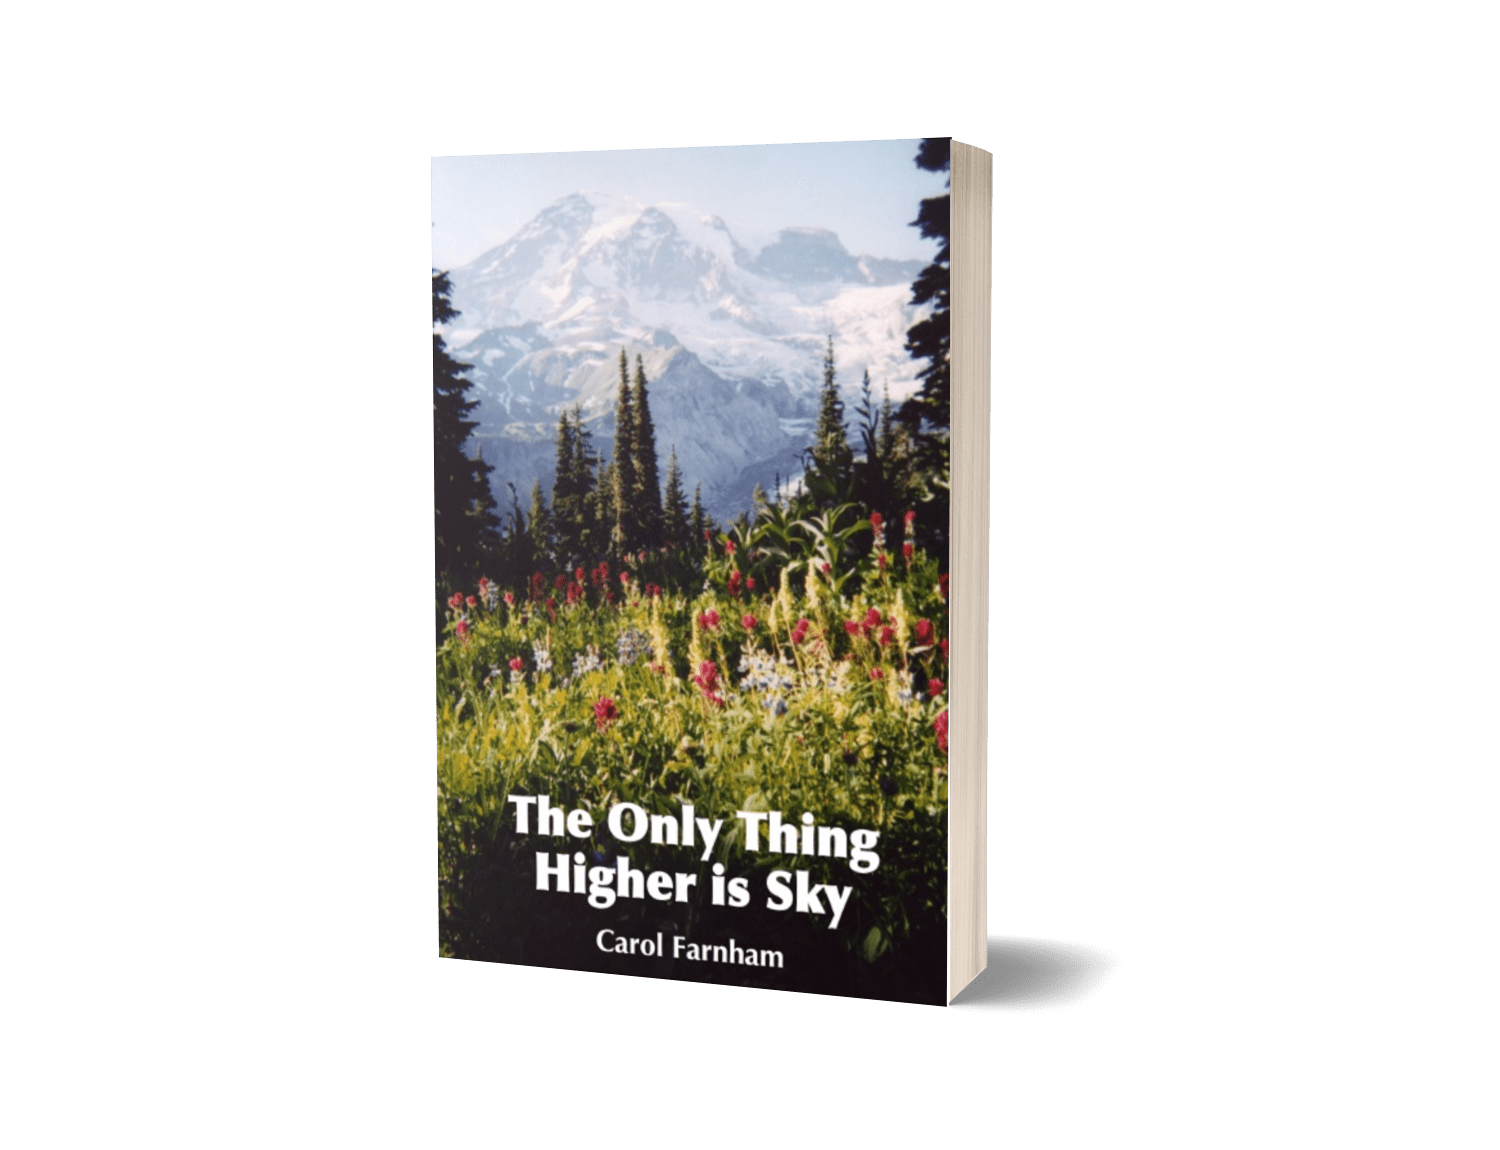 The Only Thing Higher is Sky